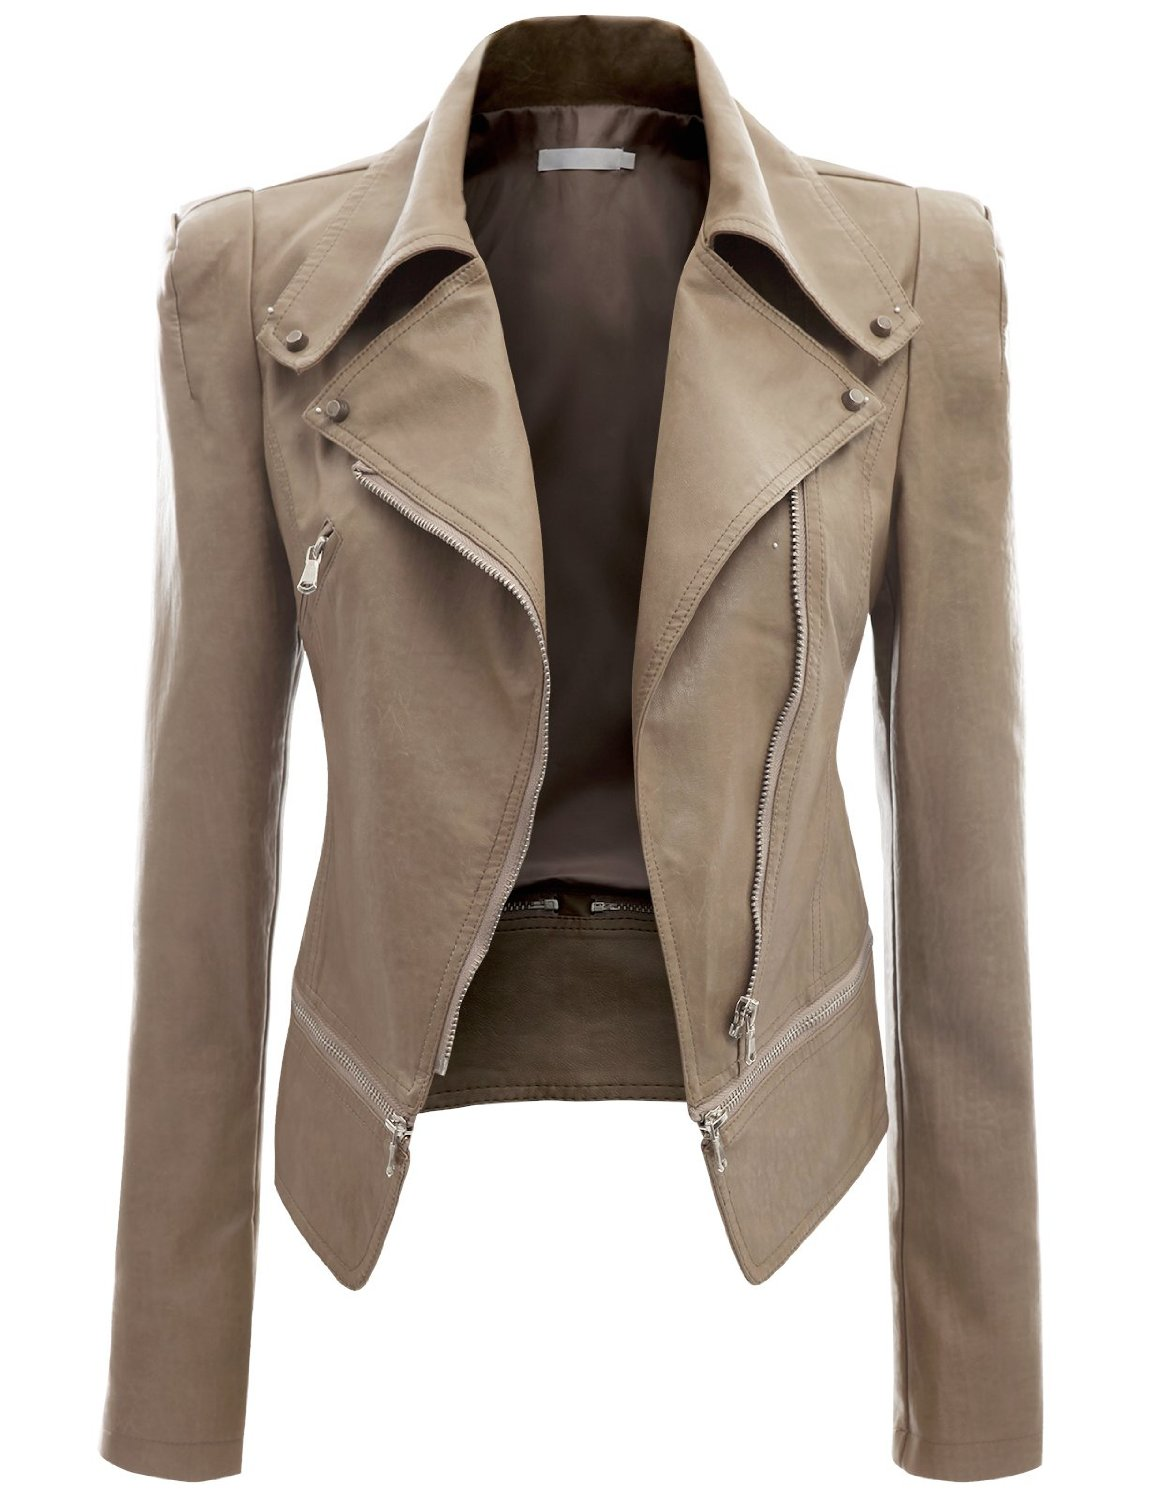 How to Wear Jacket for Women